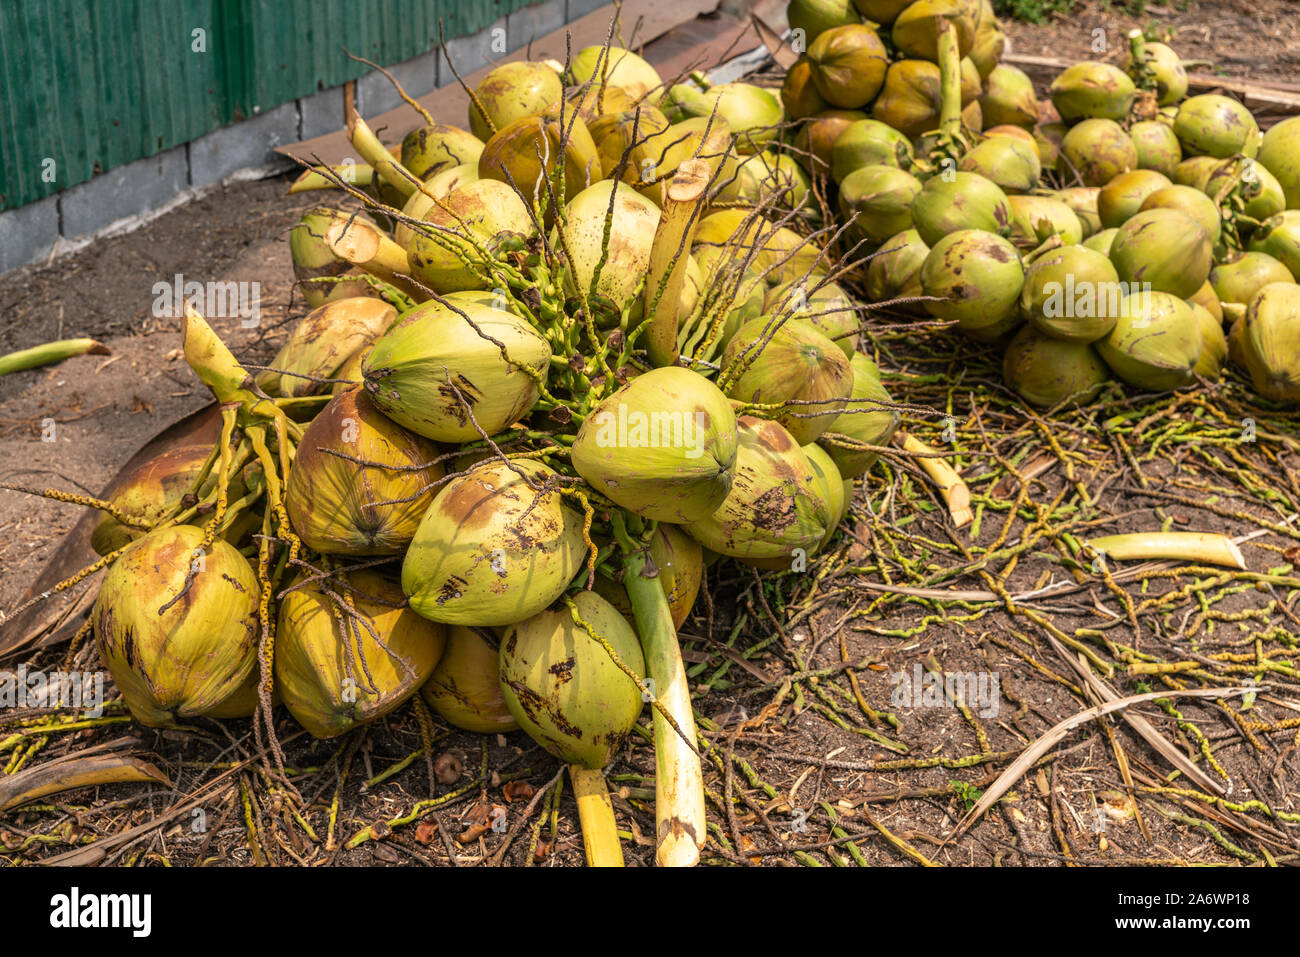 Ko Samui Island, Thailand - March 18, 2019: Harvesting coconuts. Green yellowish clusters of freshly harvested coconut clusters lying on brown dirt. Stock Photo